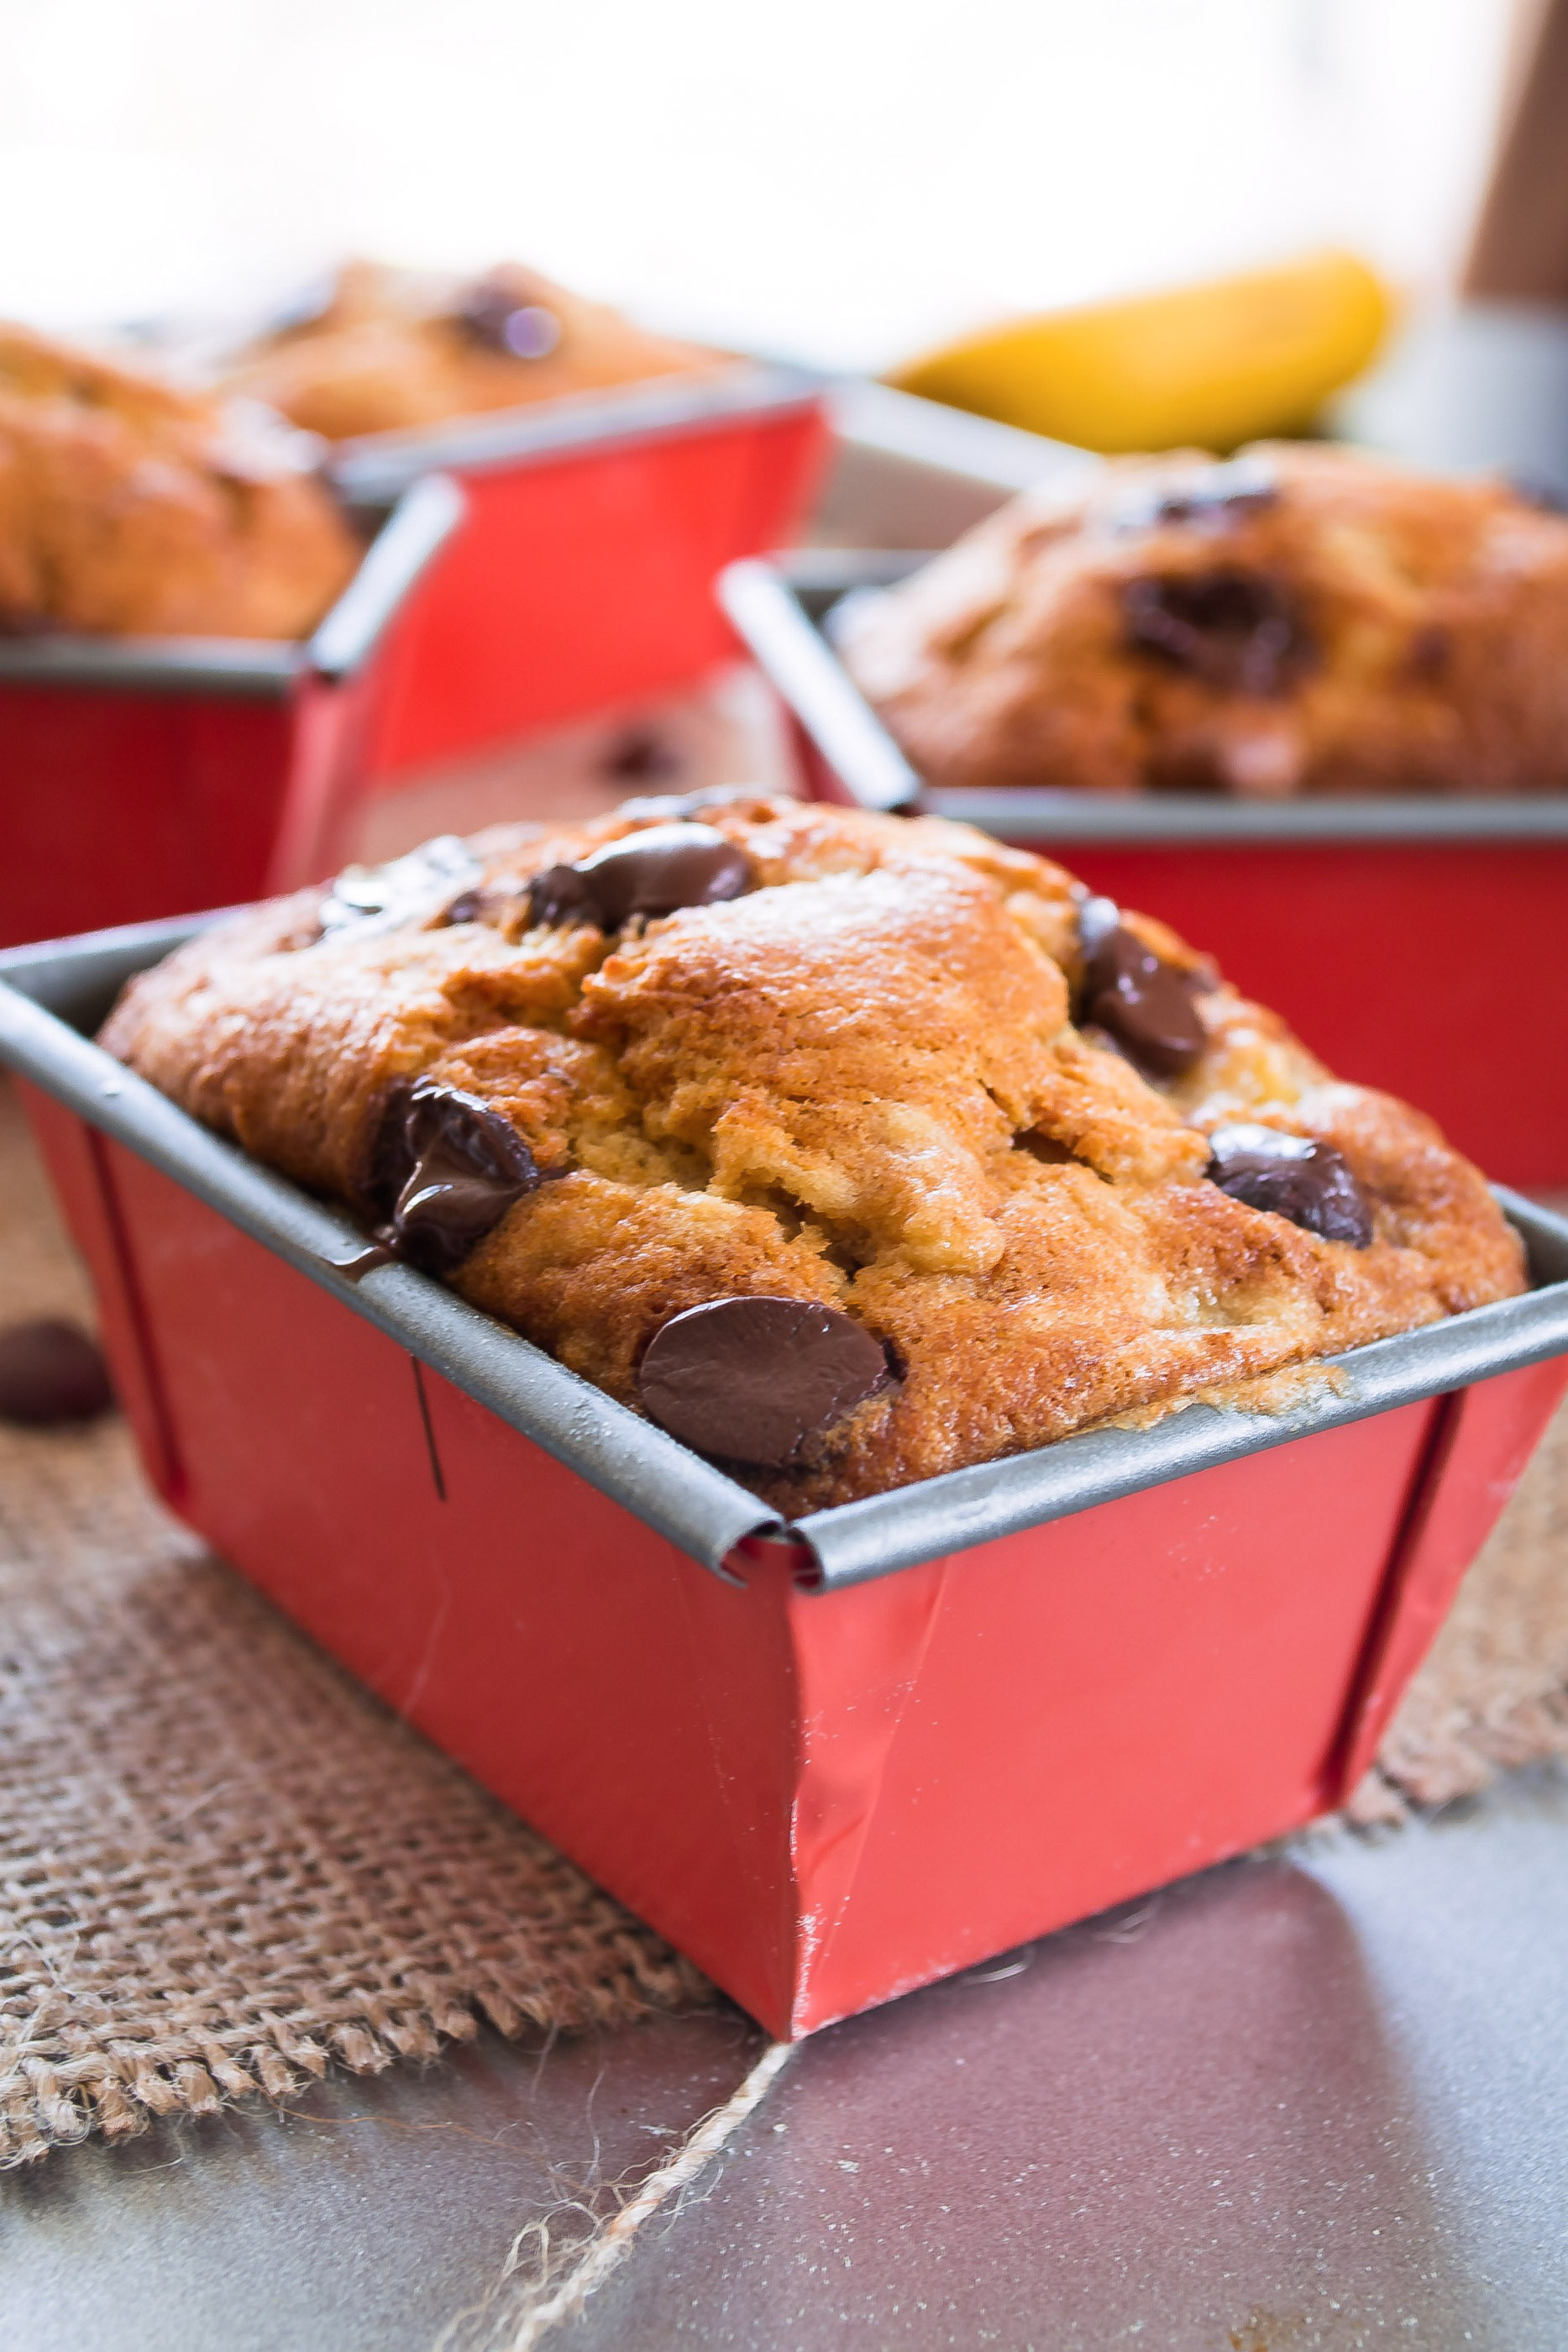 Super moist Banana loaf with raisins and chocolate chips